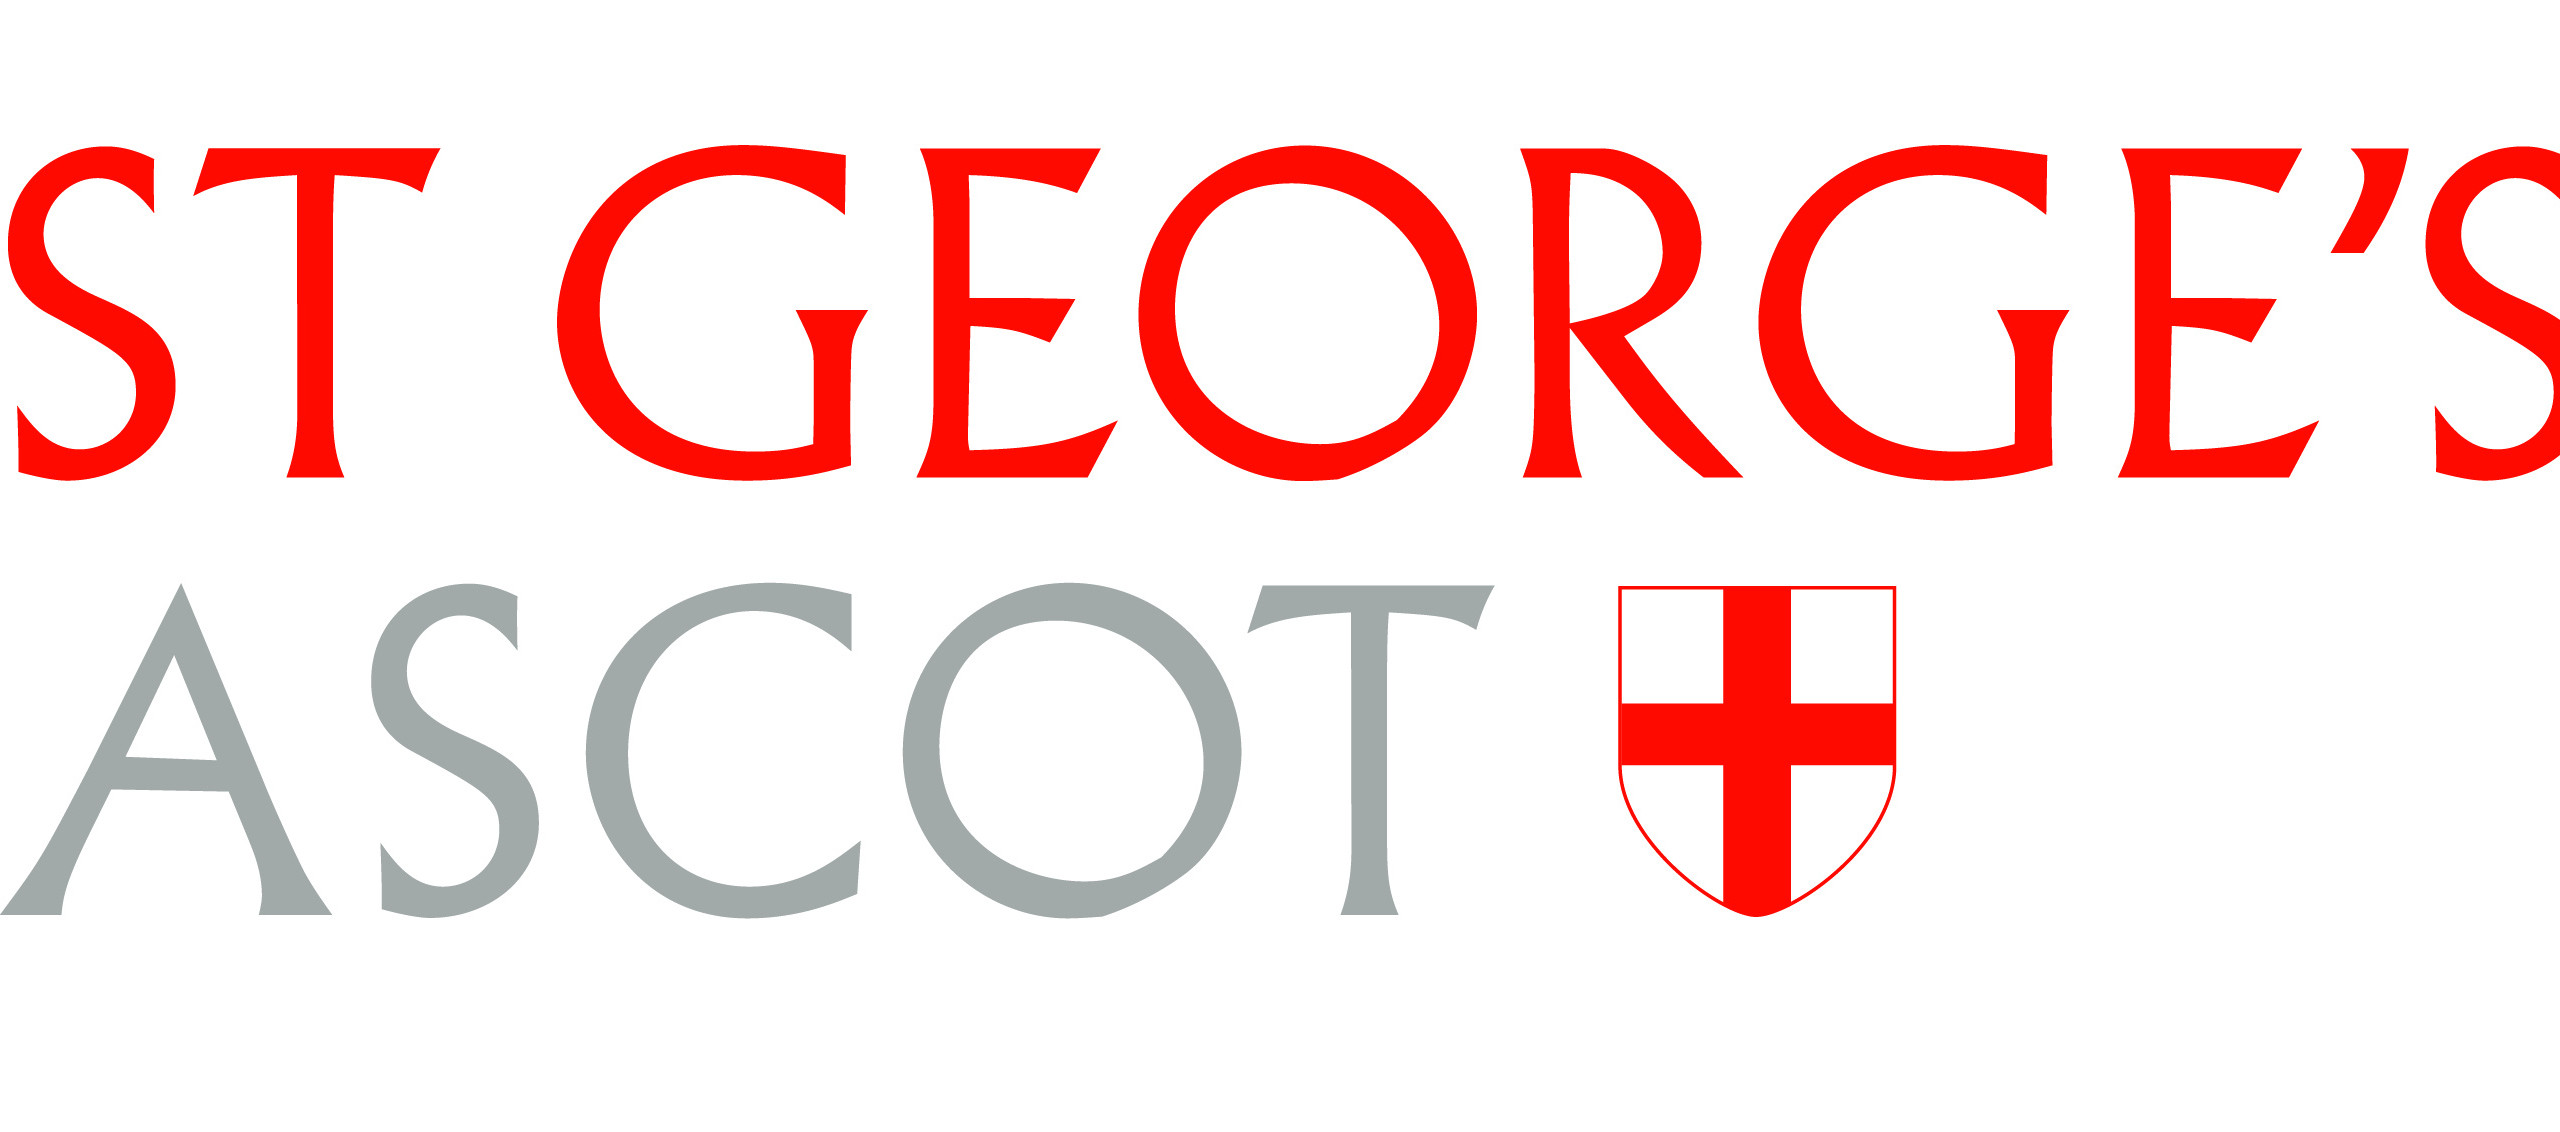 St George's Ascot Logo Low Res